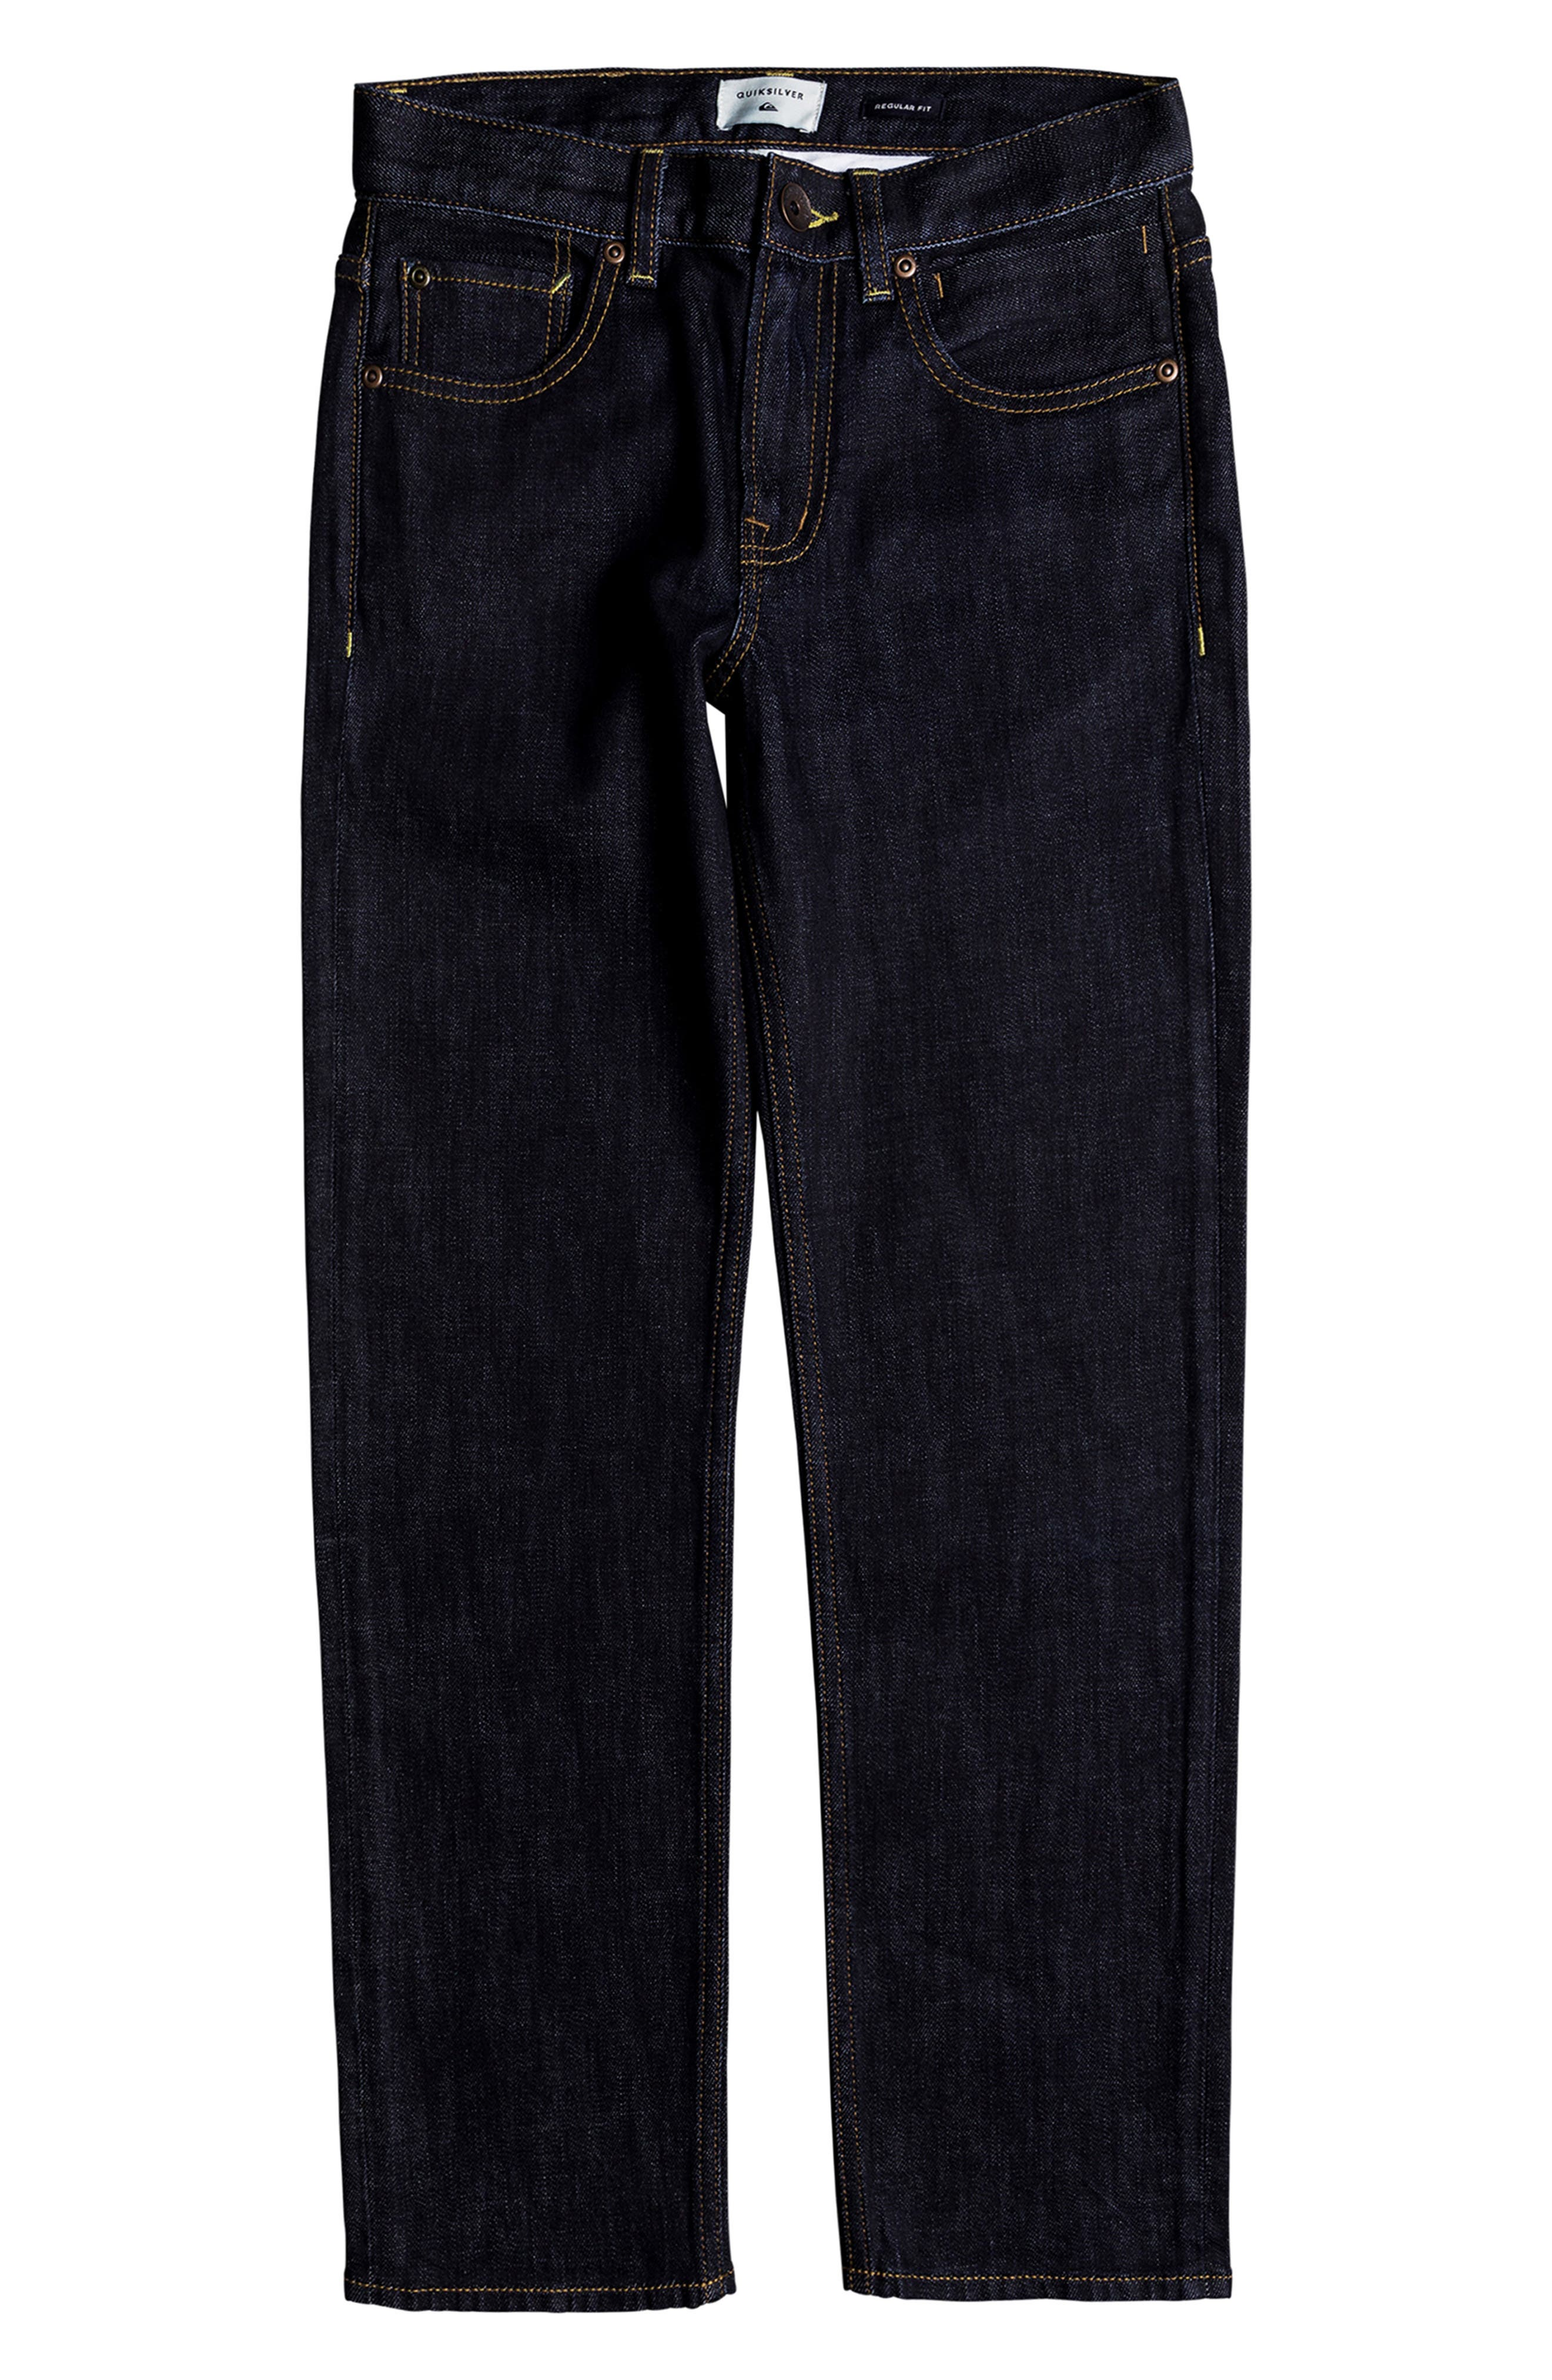 Sequel Straight Leg Jeans,                             Main thumbnail 1, color,                             RINSE